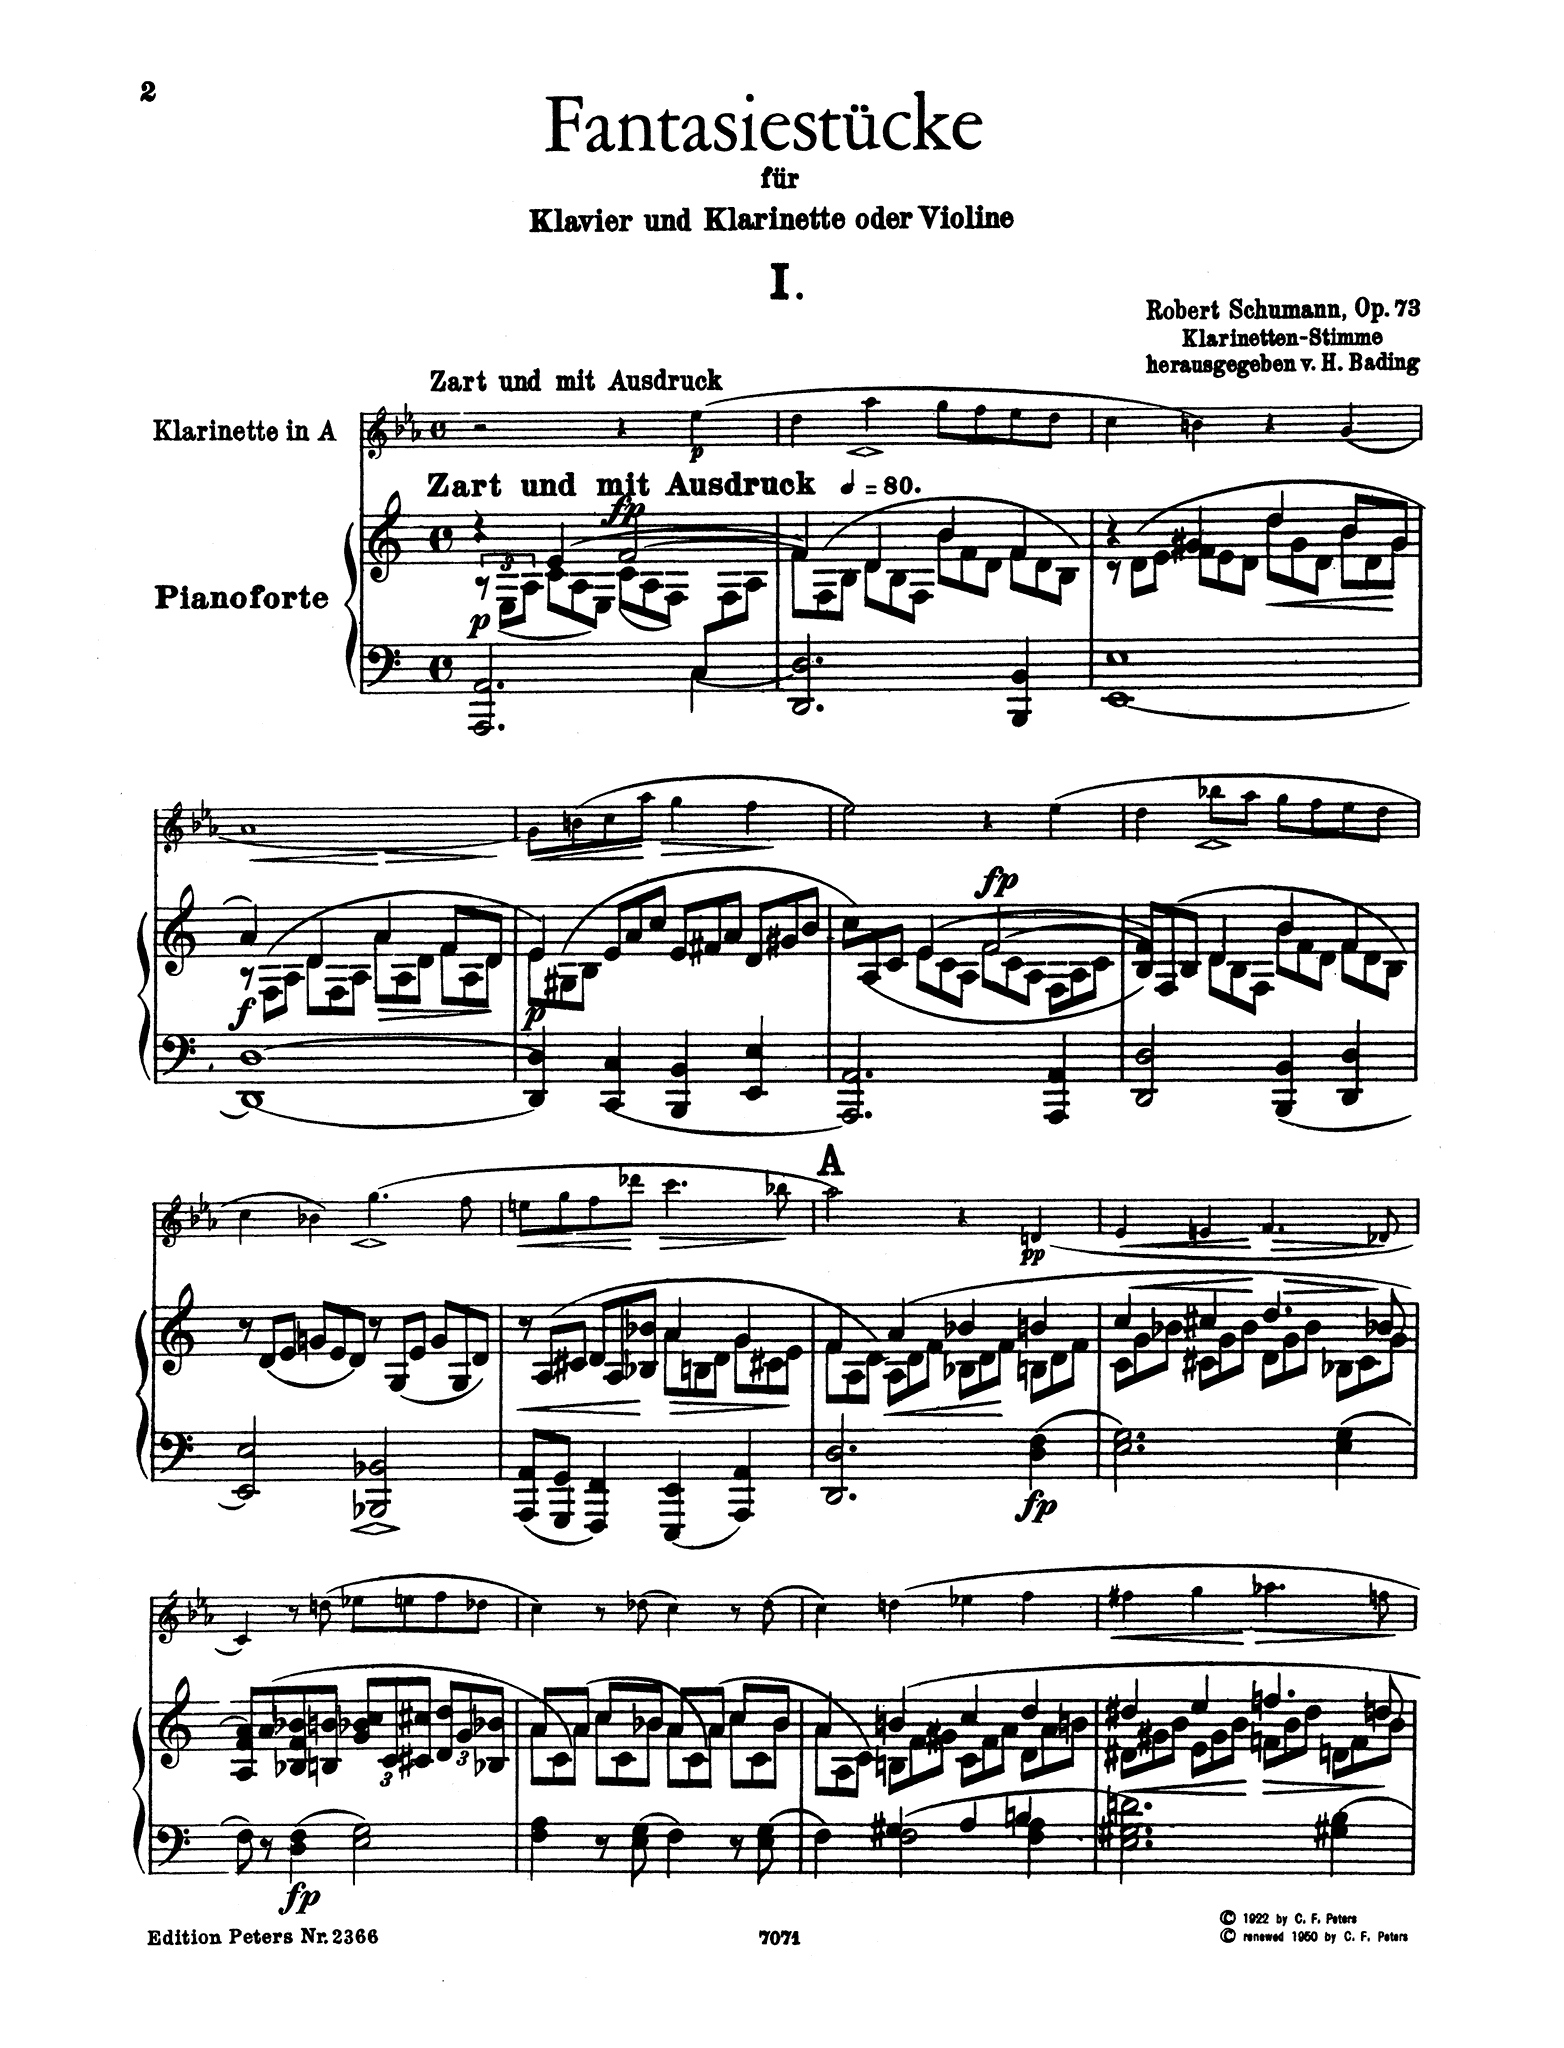 Fantasiestücke, Op. 73 - Movement 1